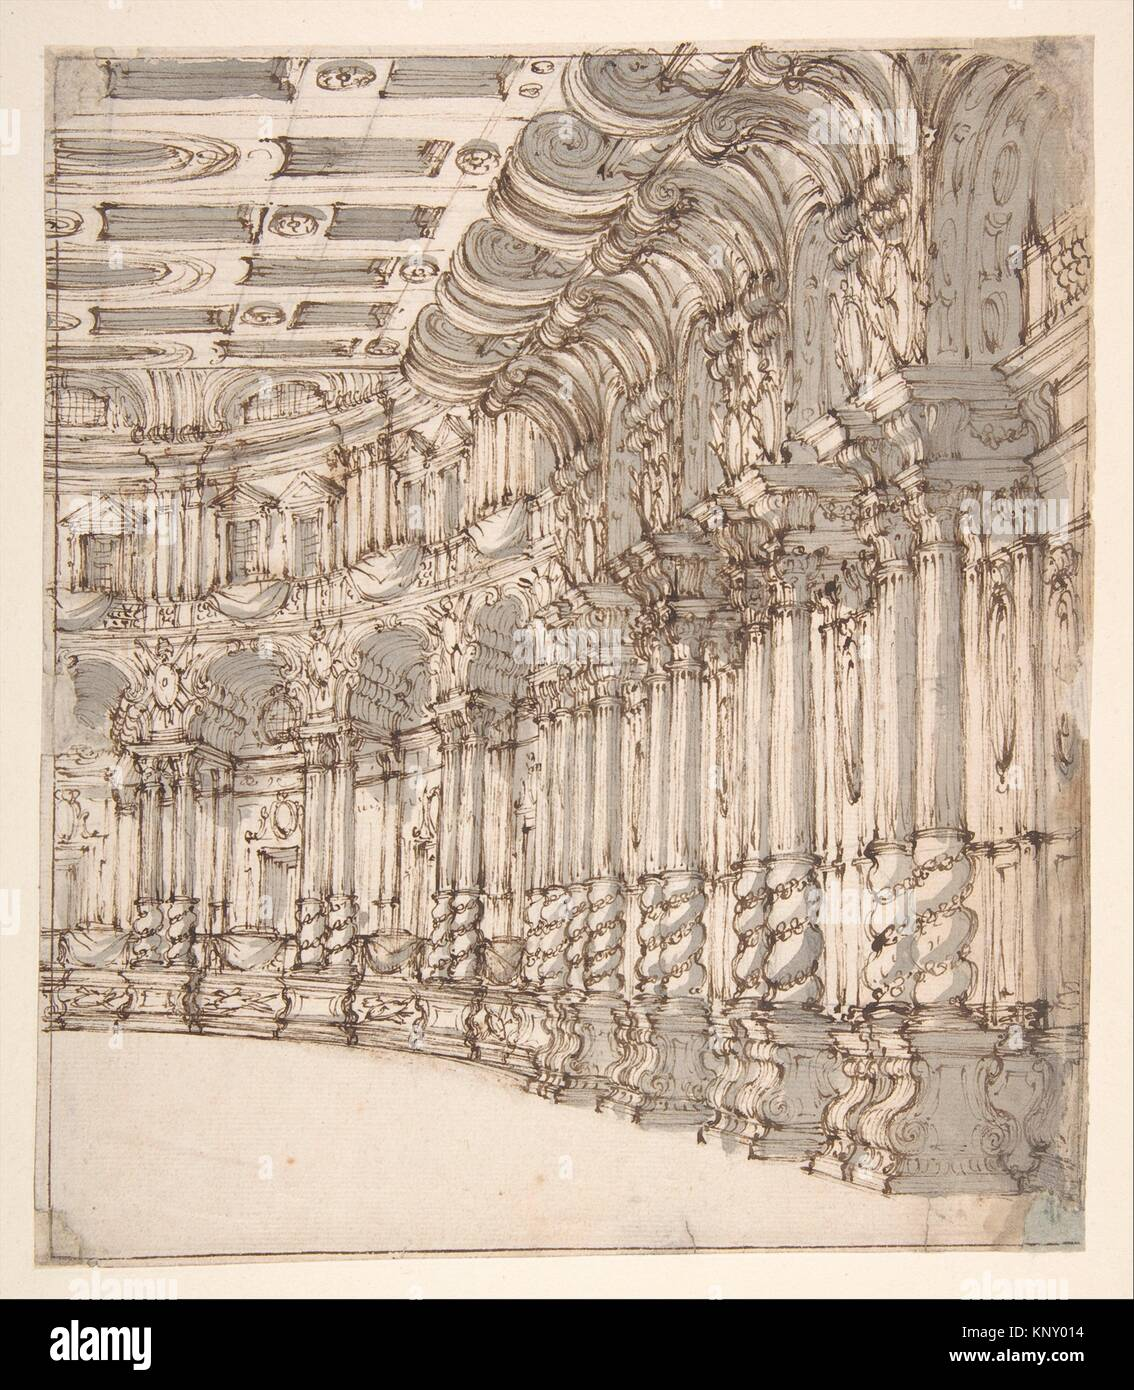 Design for a Stage Set: Interior of a Ballroom or Theater with Torqued Columns and Large Volutes Above. Artist: - Stock Image